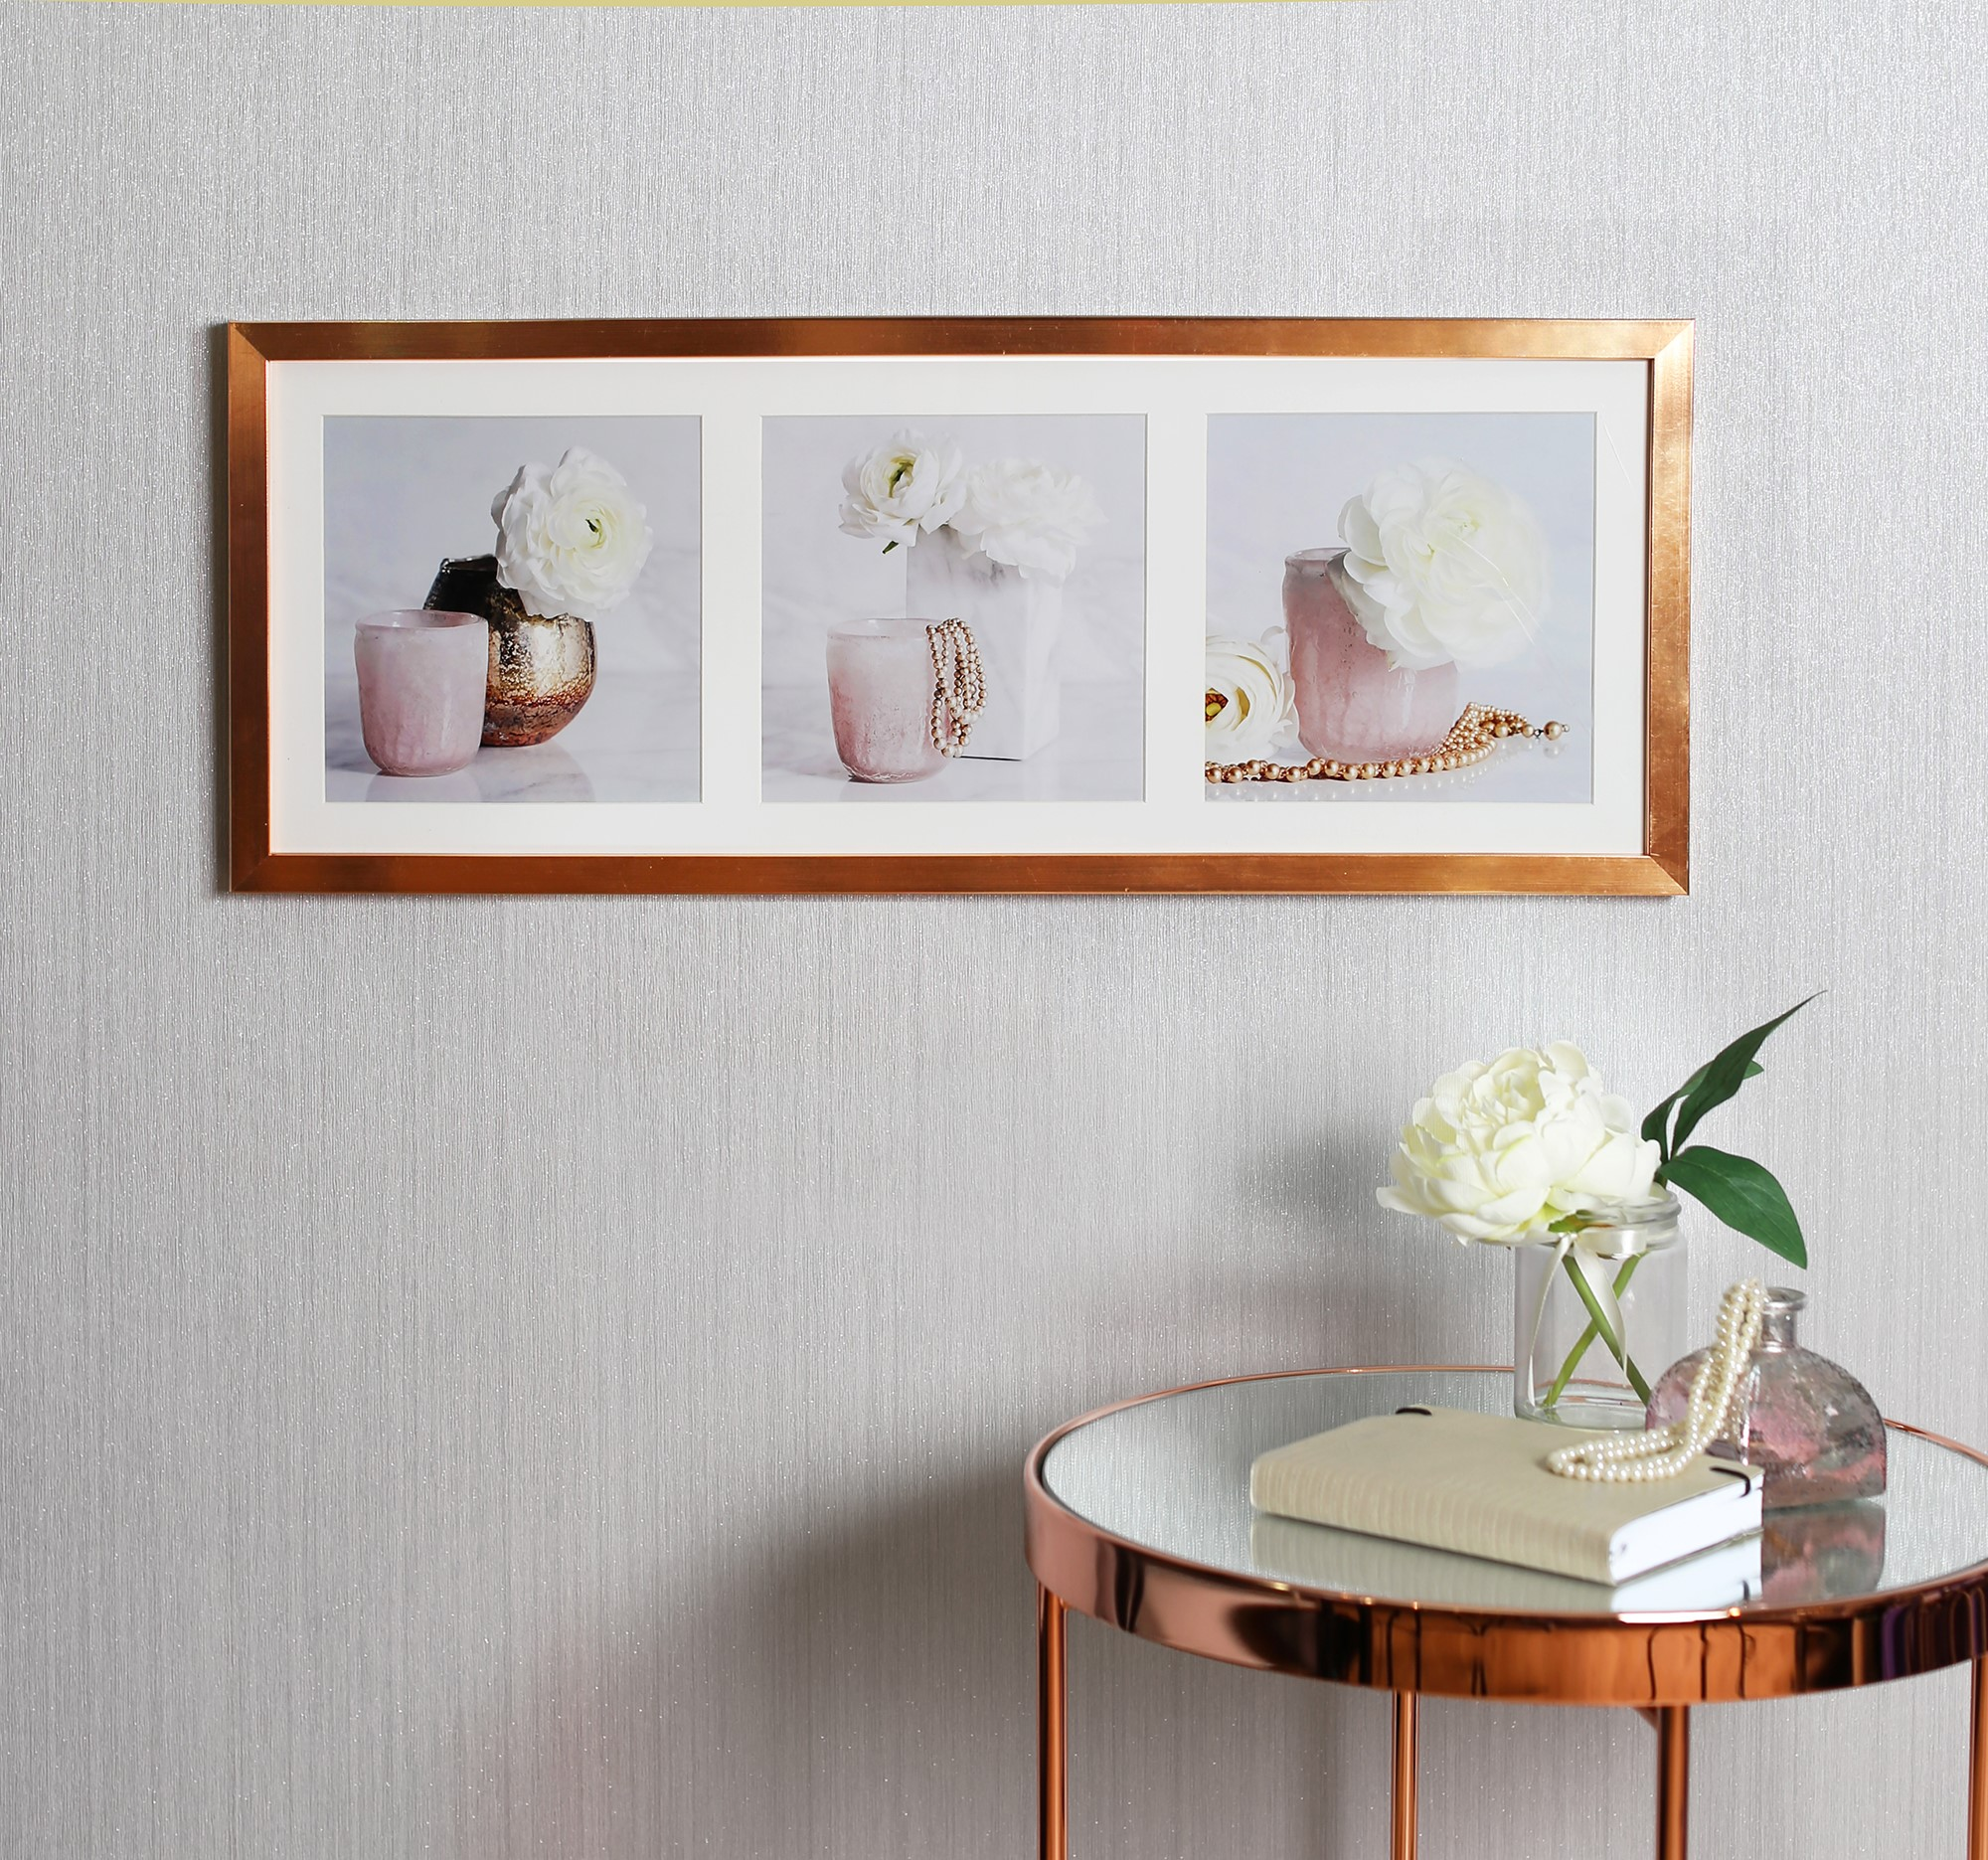 142 Items Mixed Lot - Brand New Interior Décor WallArt/Cushions, Approximate RRP £1773.62